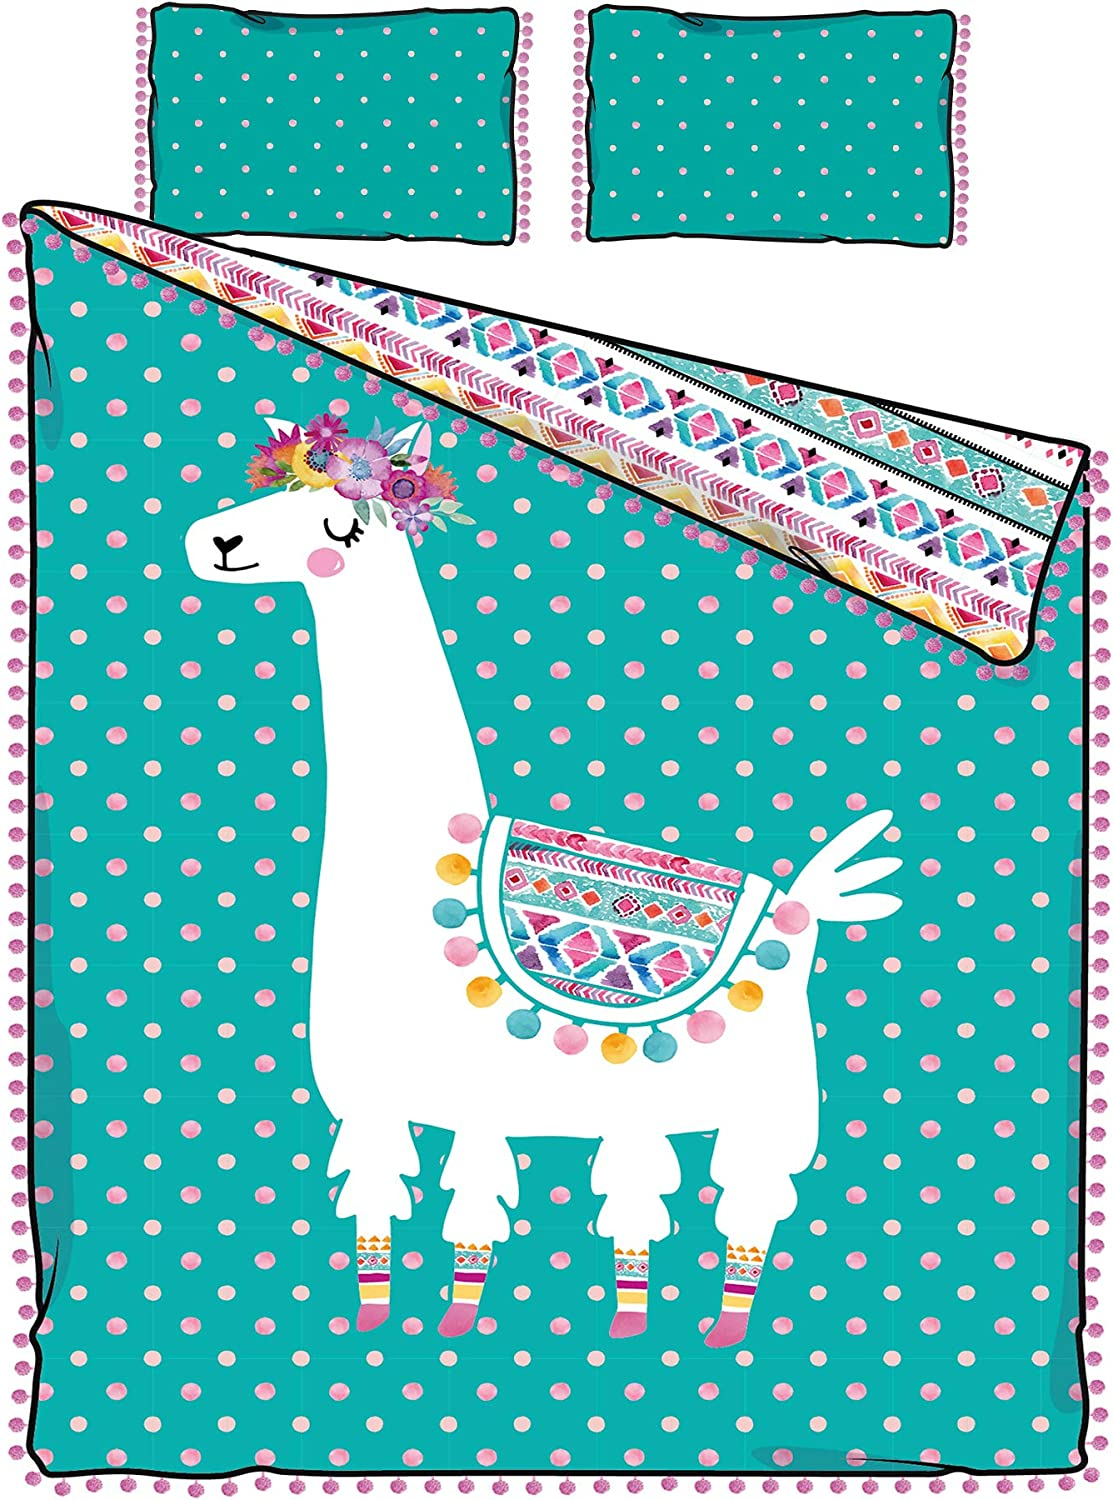 South Shore DreamIt Full Comforter and Pillowcase Festive Llama, Turquoise and Pink